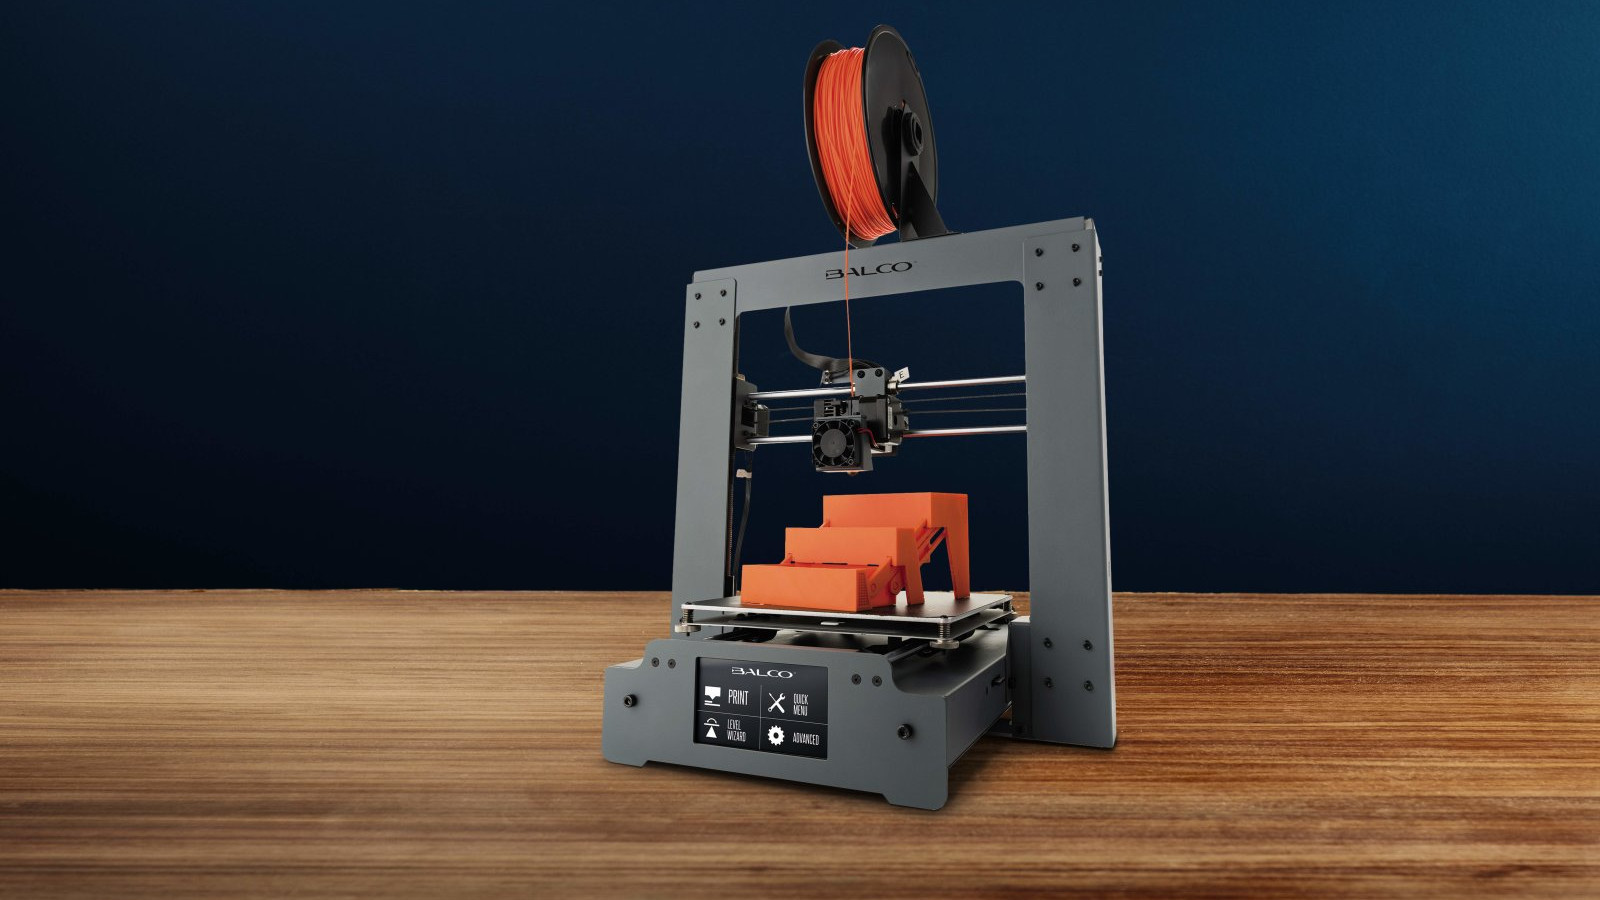 Balco 3D Printer on Sale for £300 at UK Aldi for the First Time | All3DP